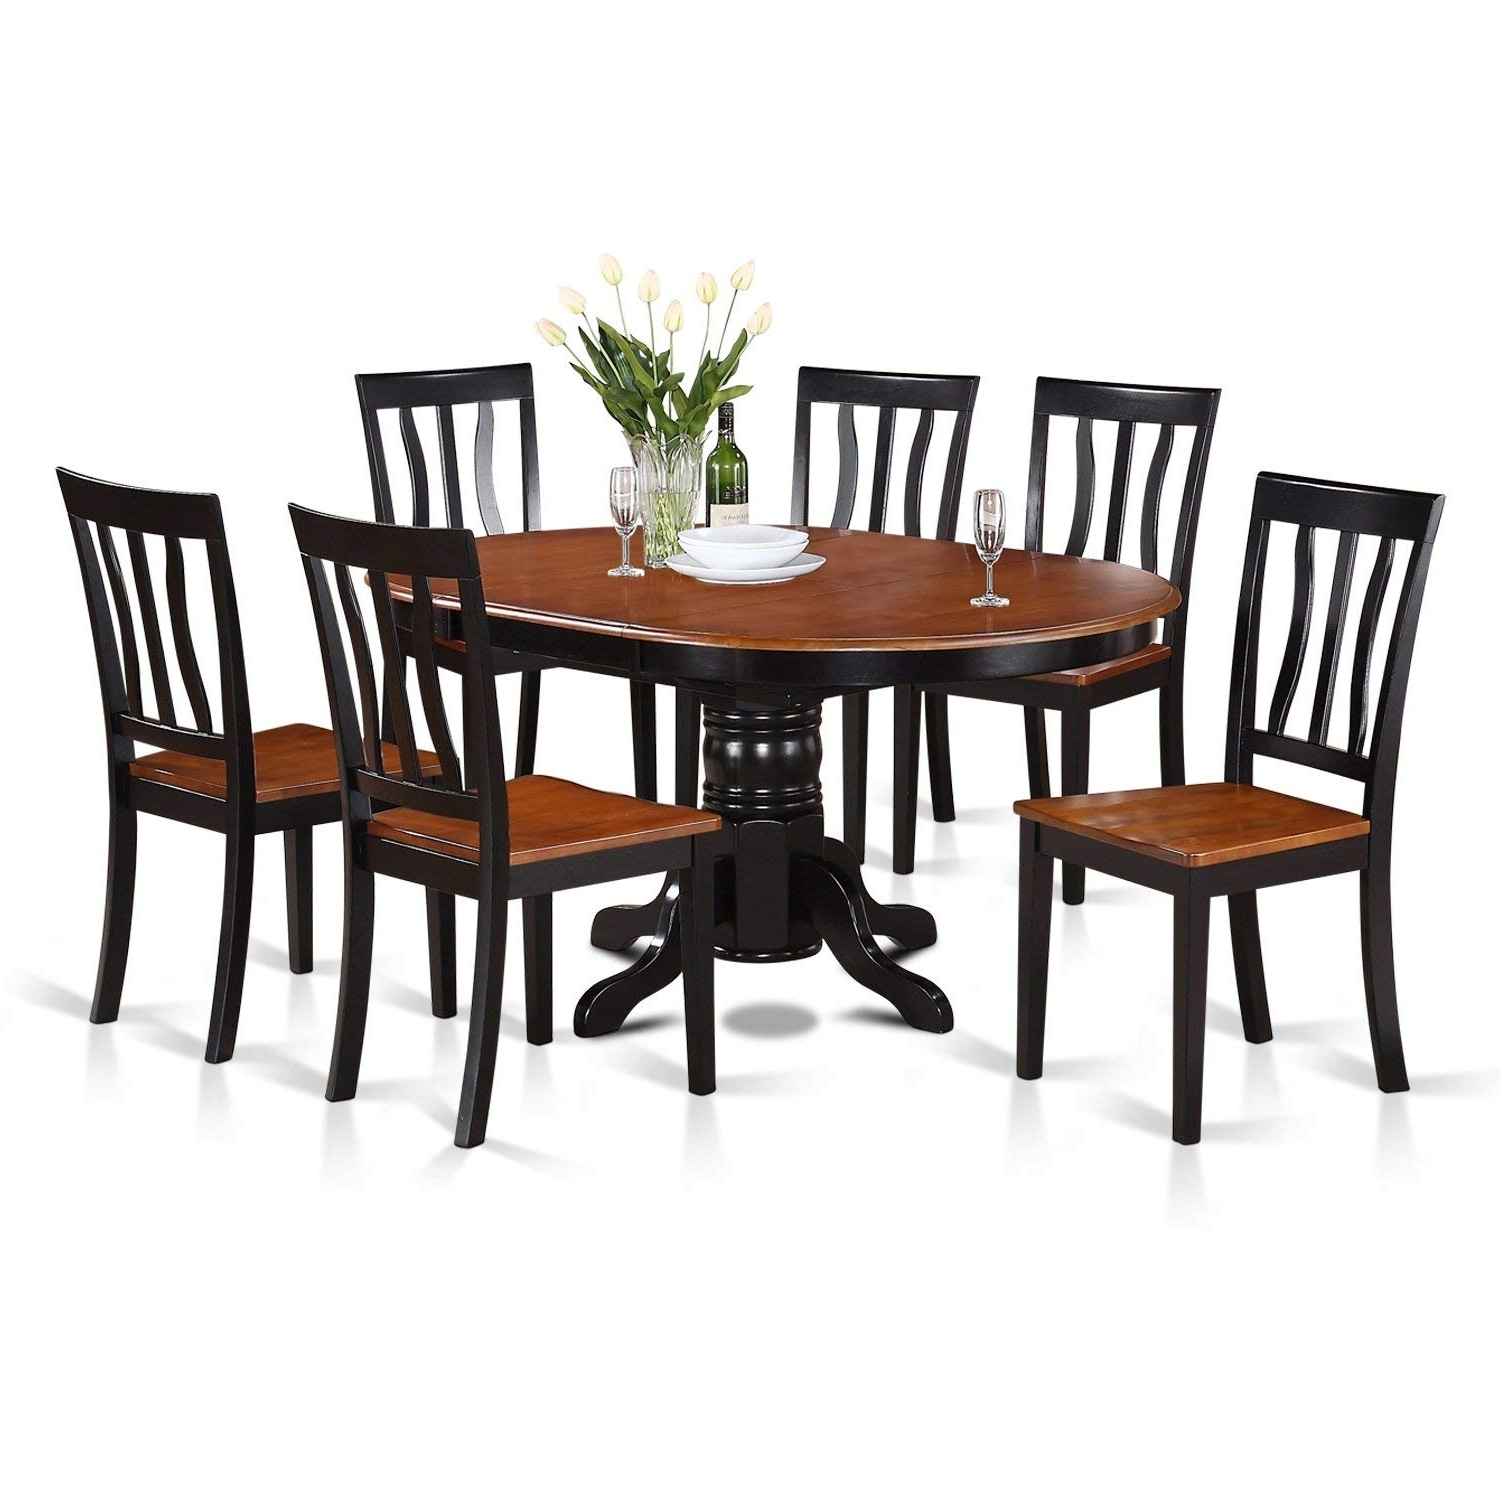 2018 6 Seat Dining Tables And Chairs For Amazon: East West Furniture Avat7 Blk W 7 Piece Dining Table Set (Gallery 5 of 25)